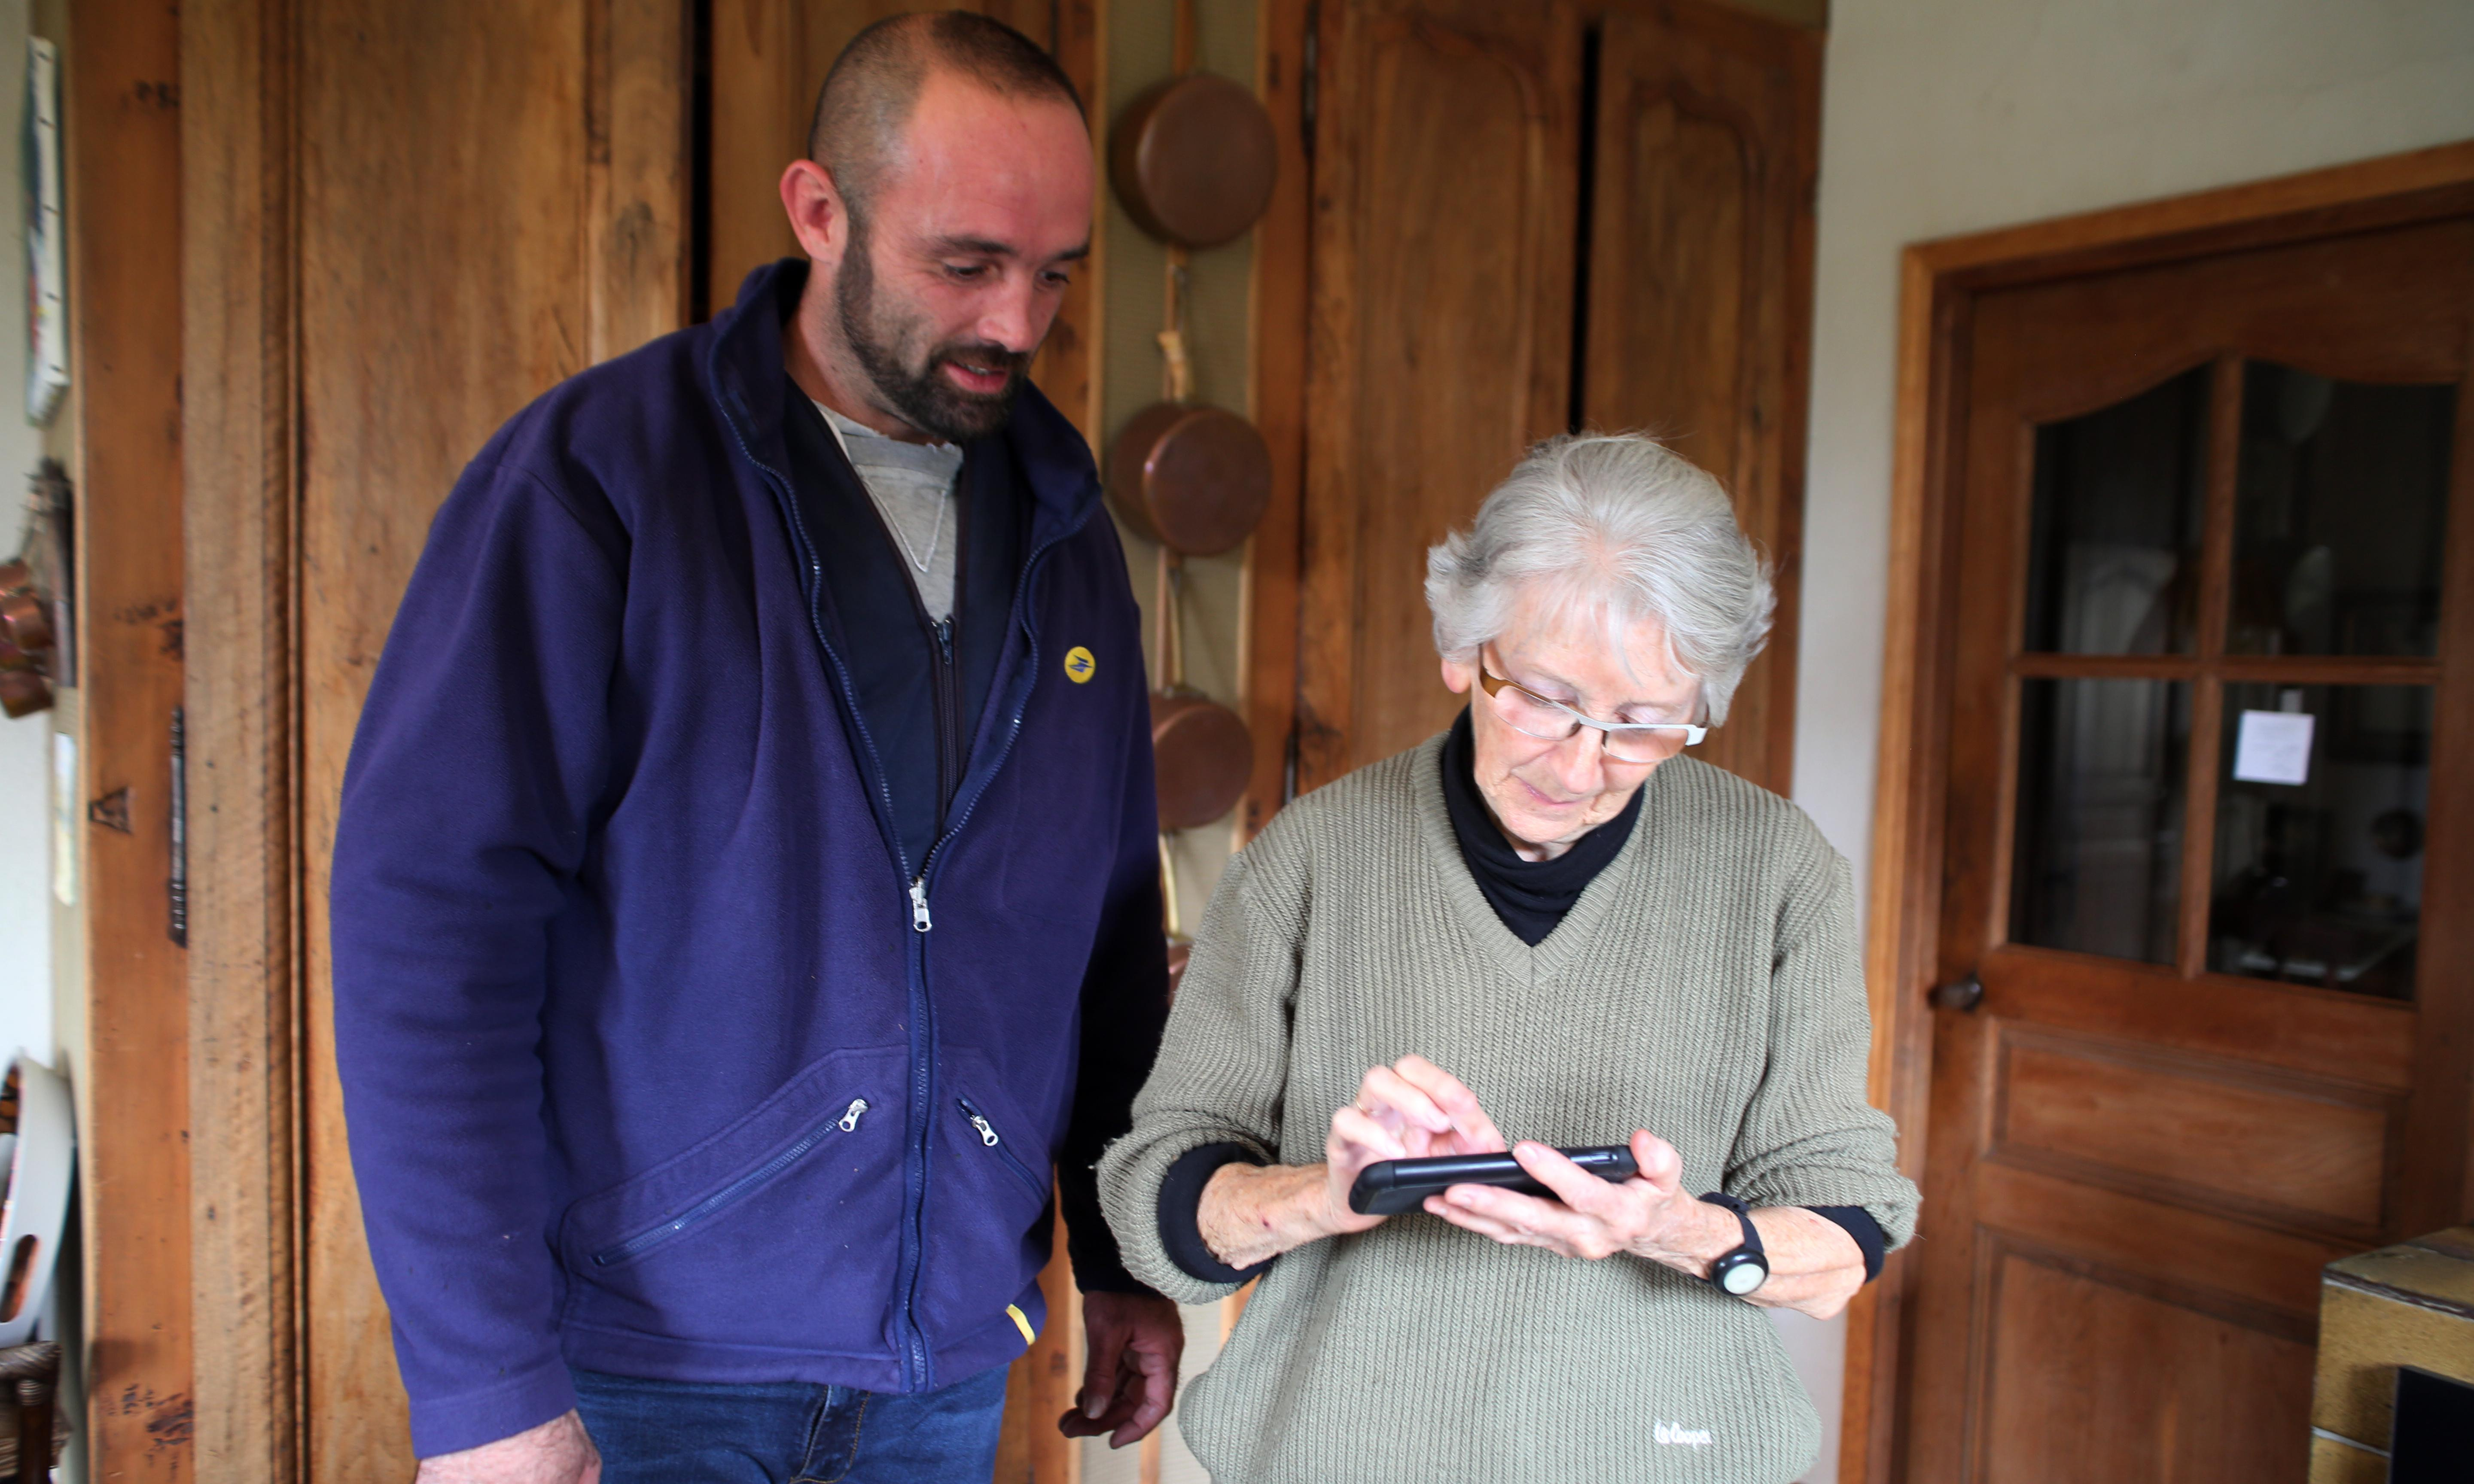 Care package: the French postal workers helping lonely older people